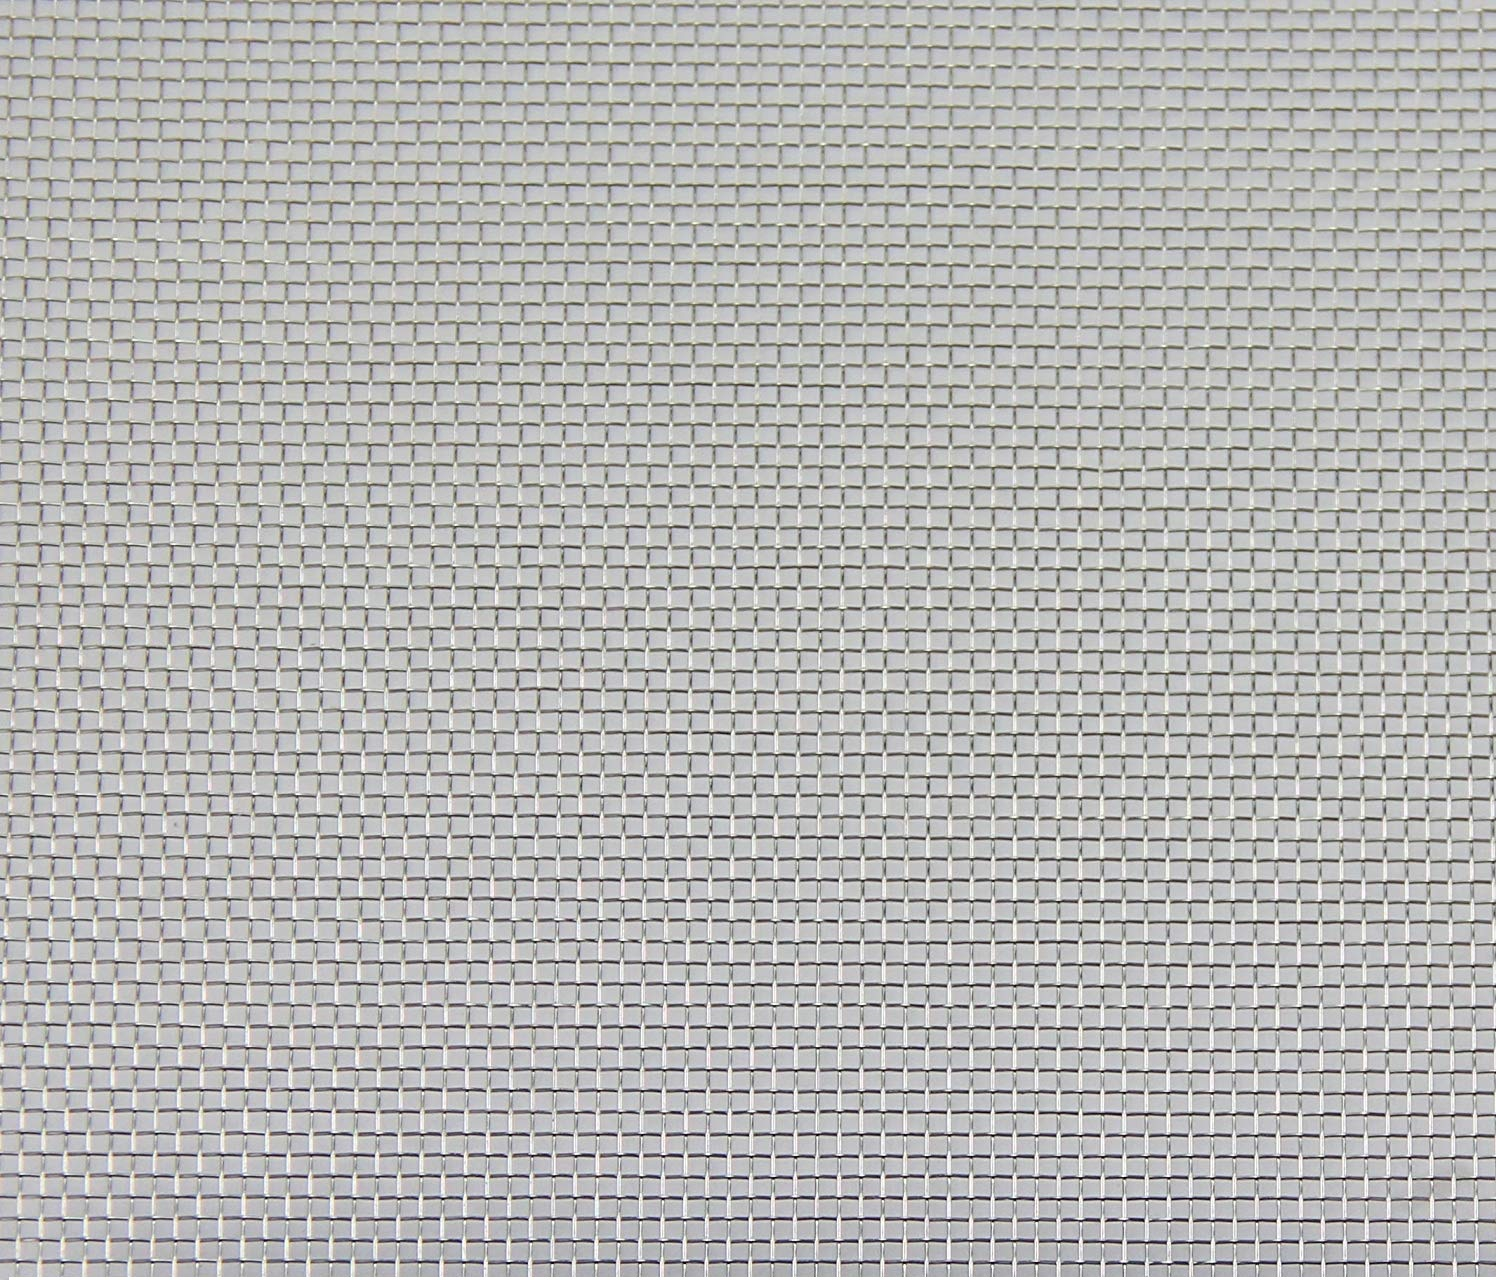 Insect Mesh Stainless Steel 610mm x 10M Roll